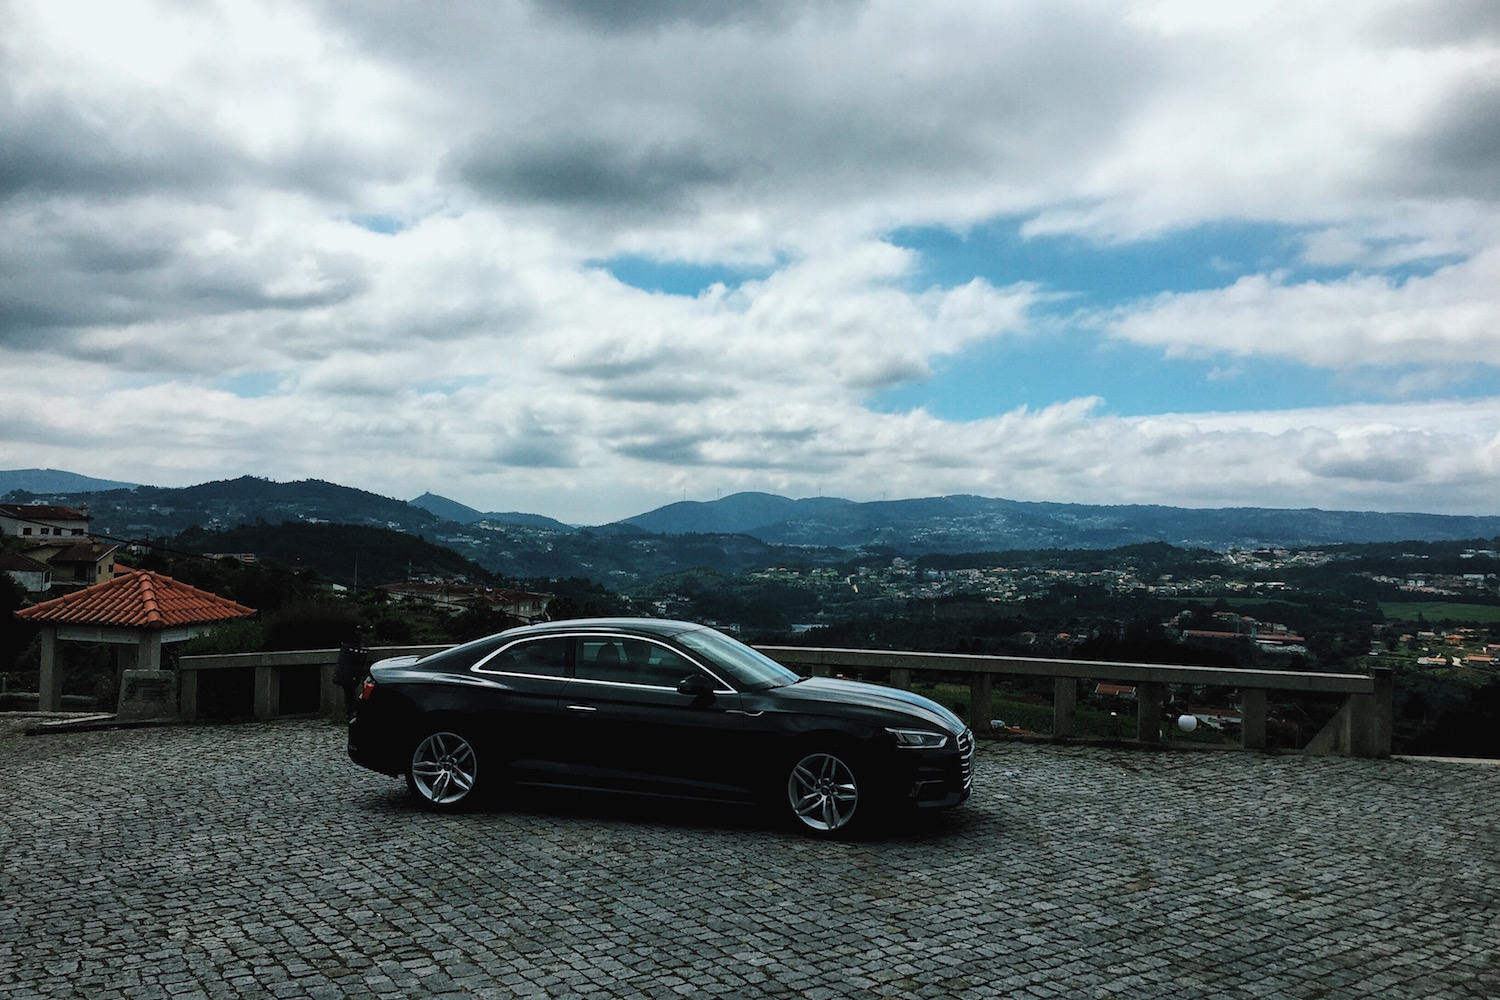 Travel-Diary_A-Long-Weekend-In-Porto_by-Meanwhile-in-Awesometown_Mens-Fashion-and-Lifestyle-Blog-from-Austria_Audi A5 in front of view on Douro Valley.jpg